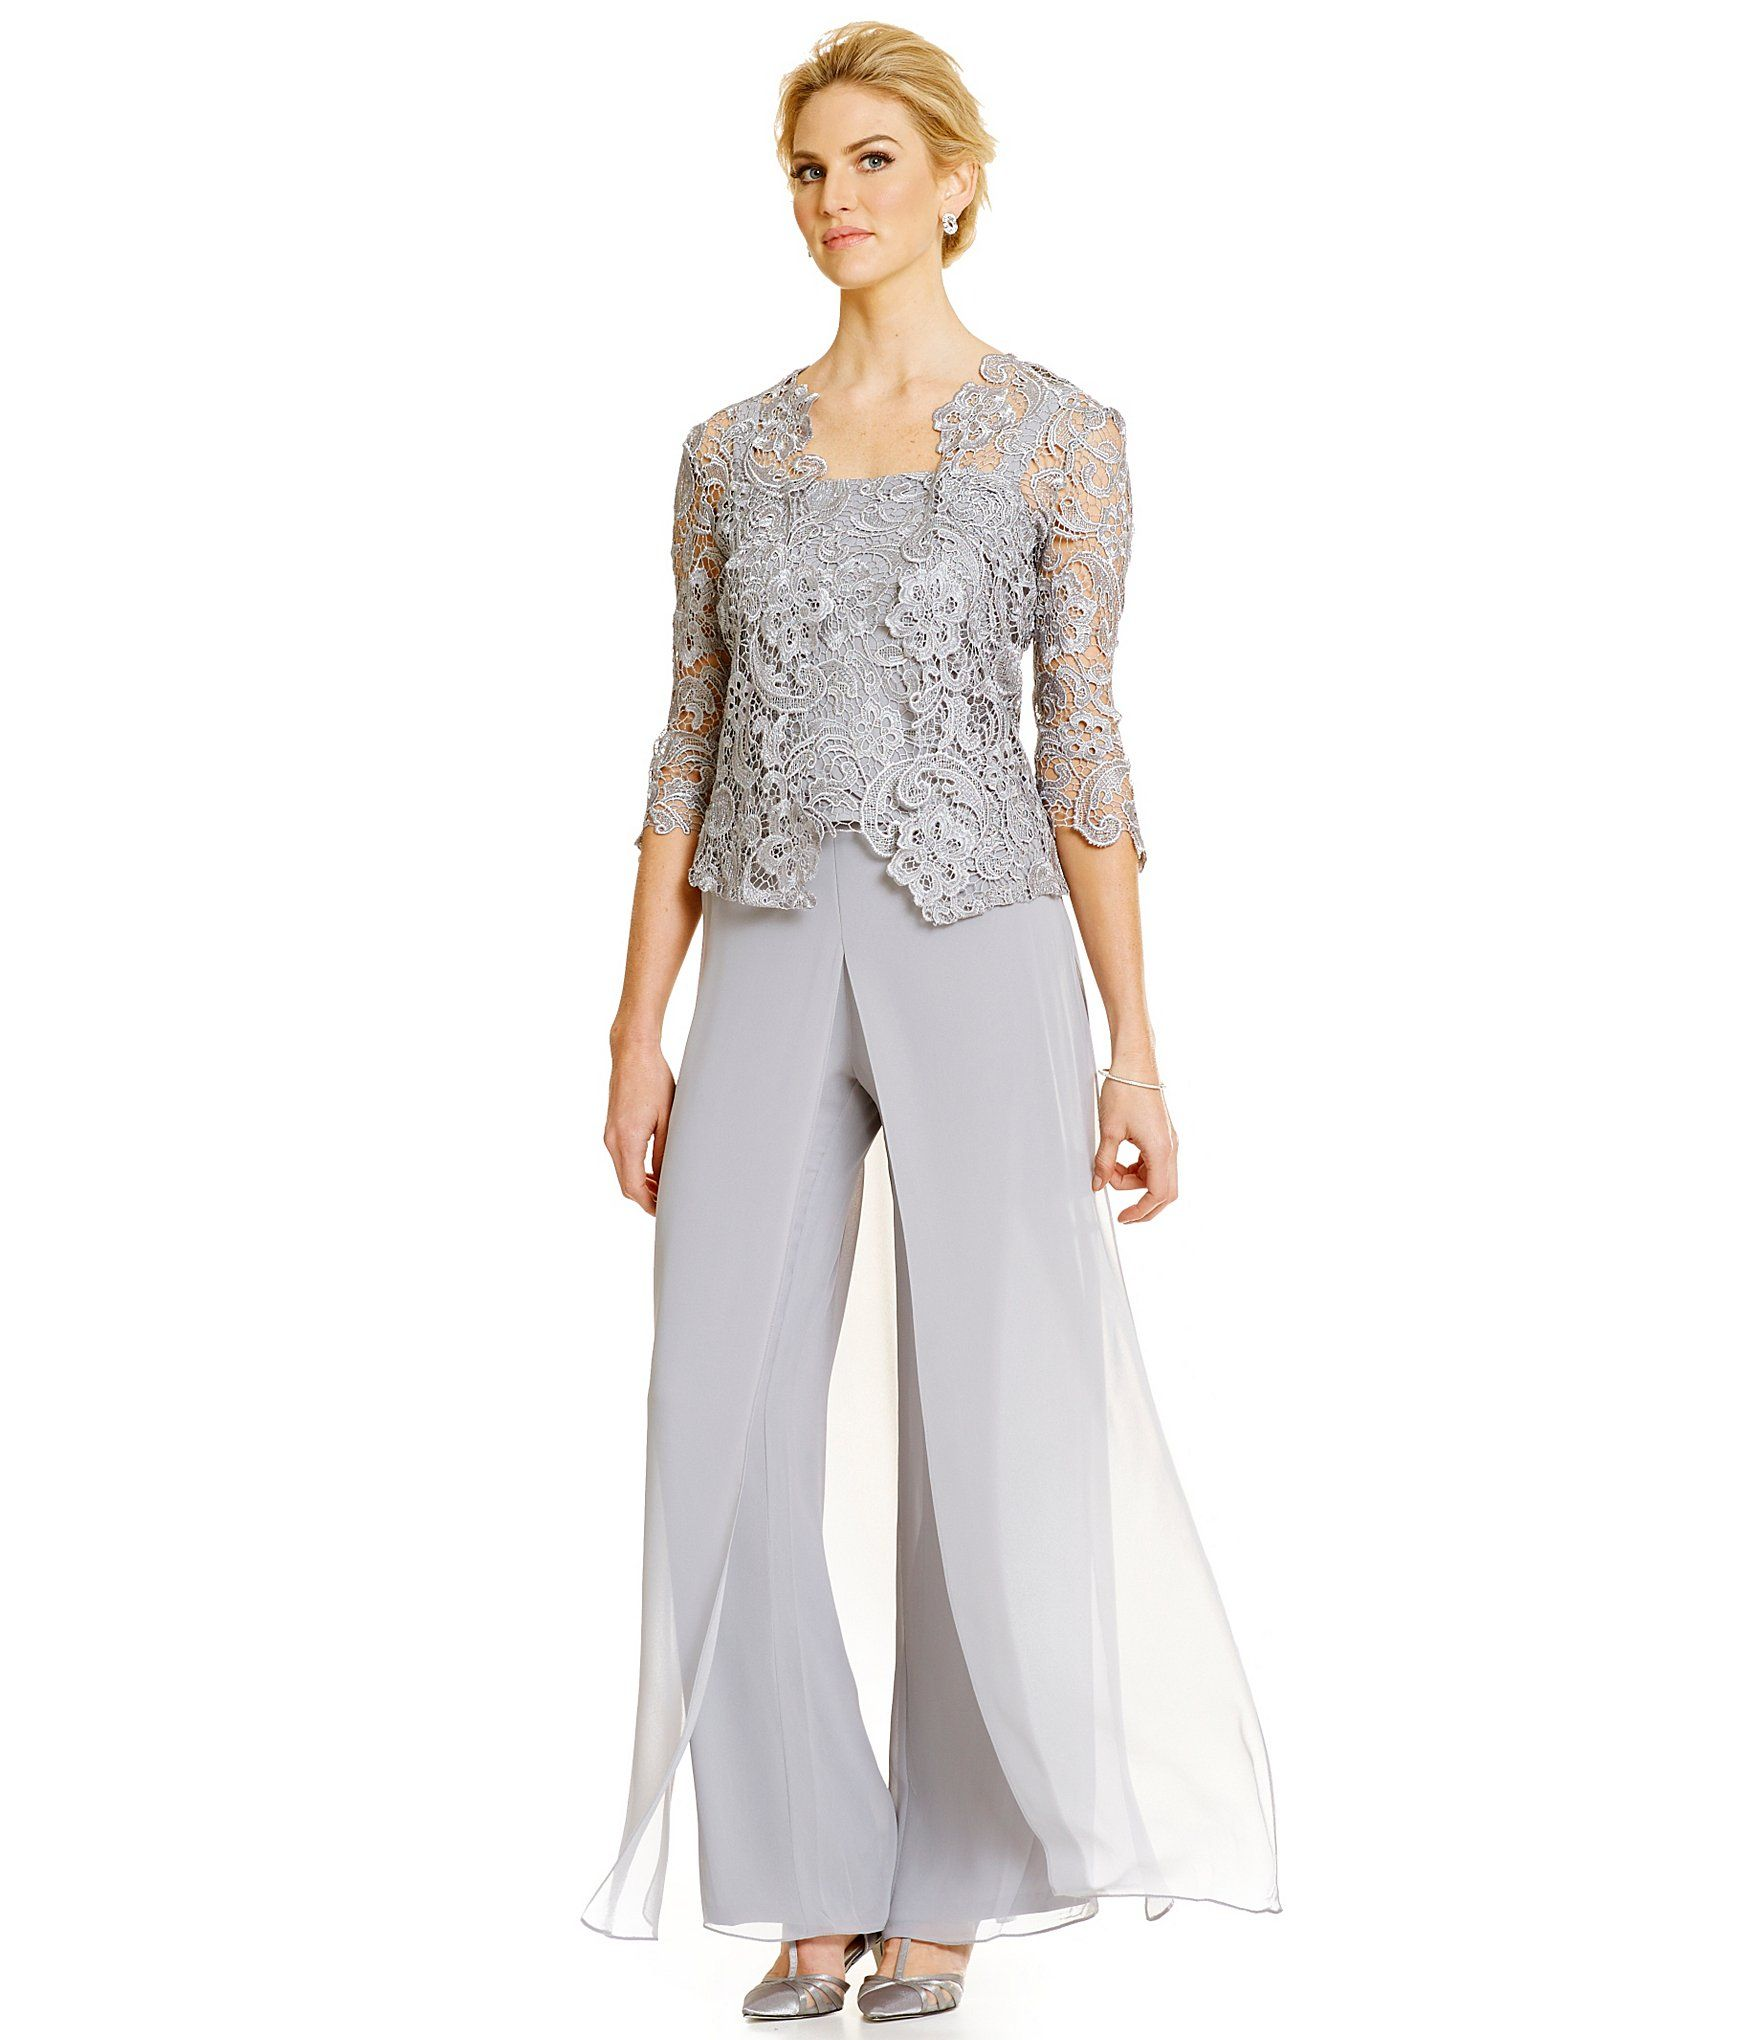 Dillards Wedding Pant Suits For Grandmothers